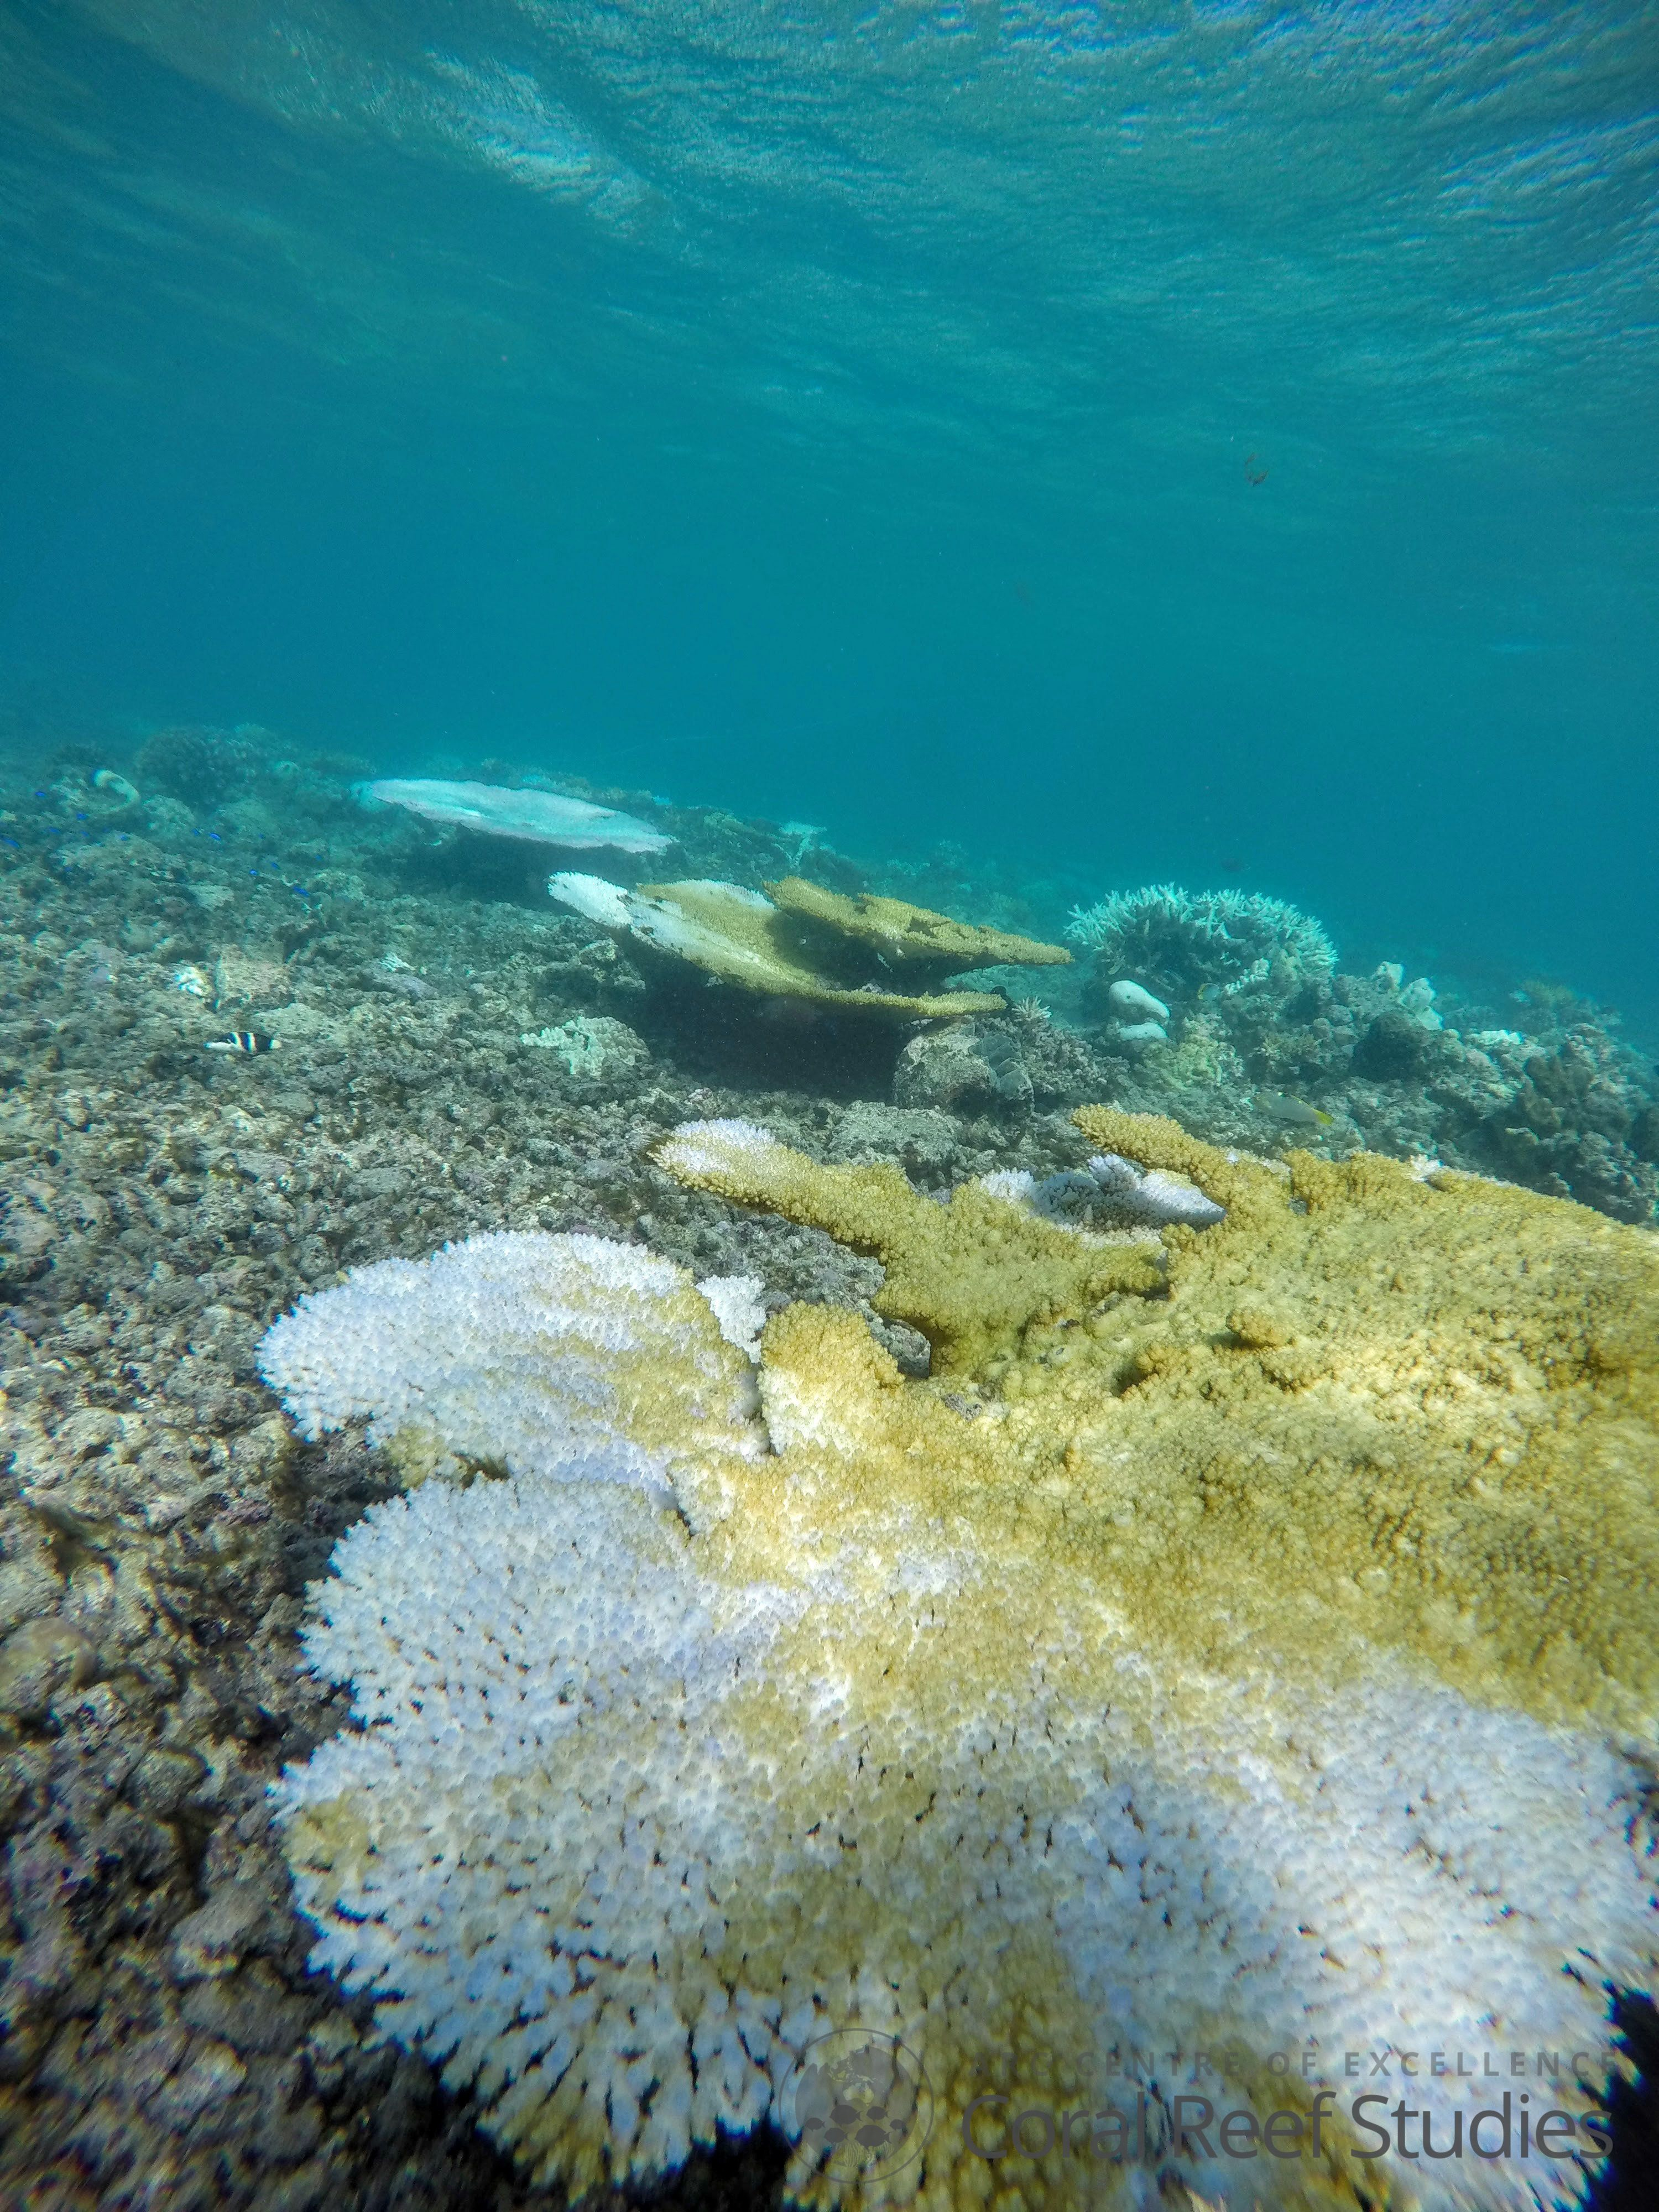 Scientists have called on the Australian government to tackle emissions in an effort to curb global warming and save the&nbsp